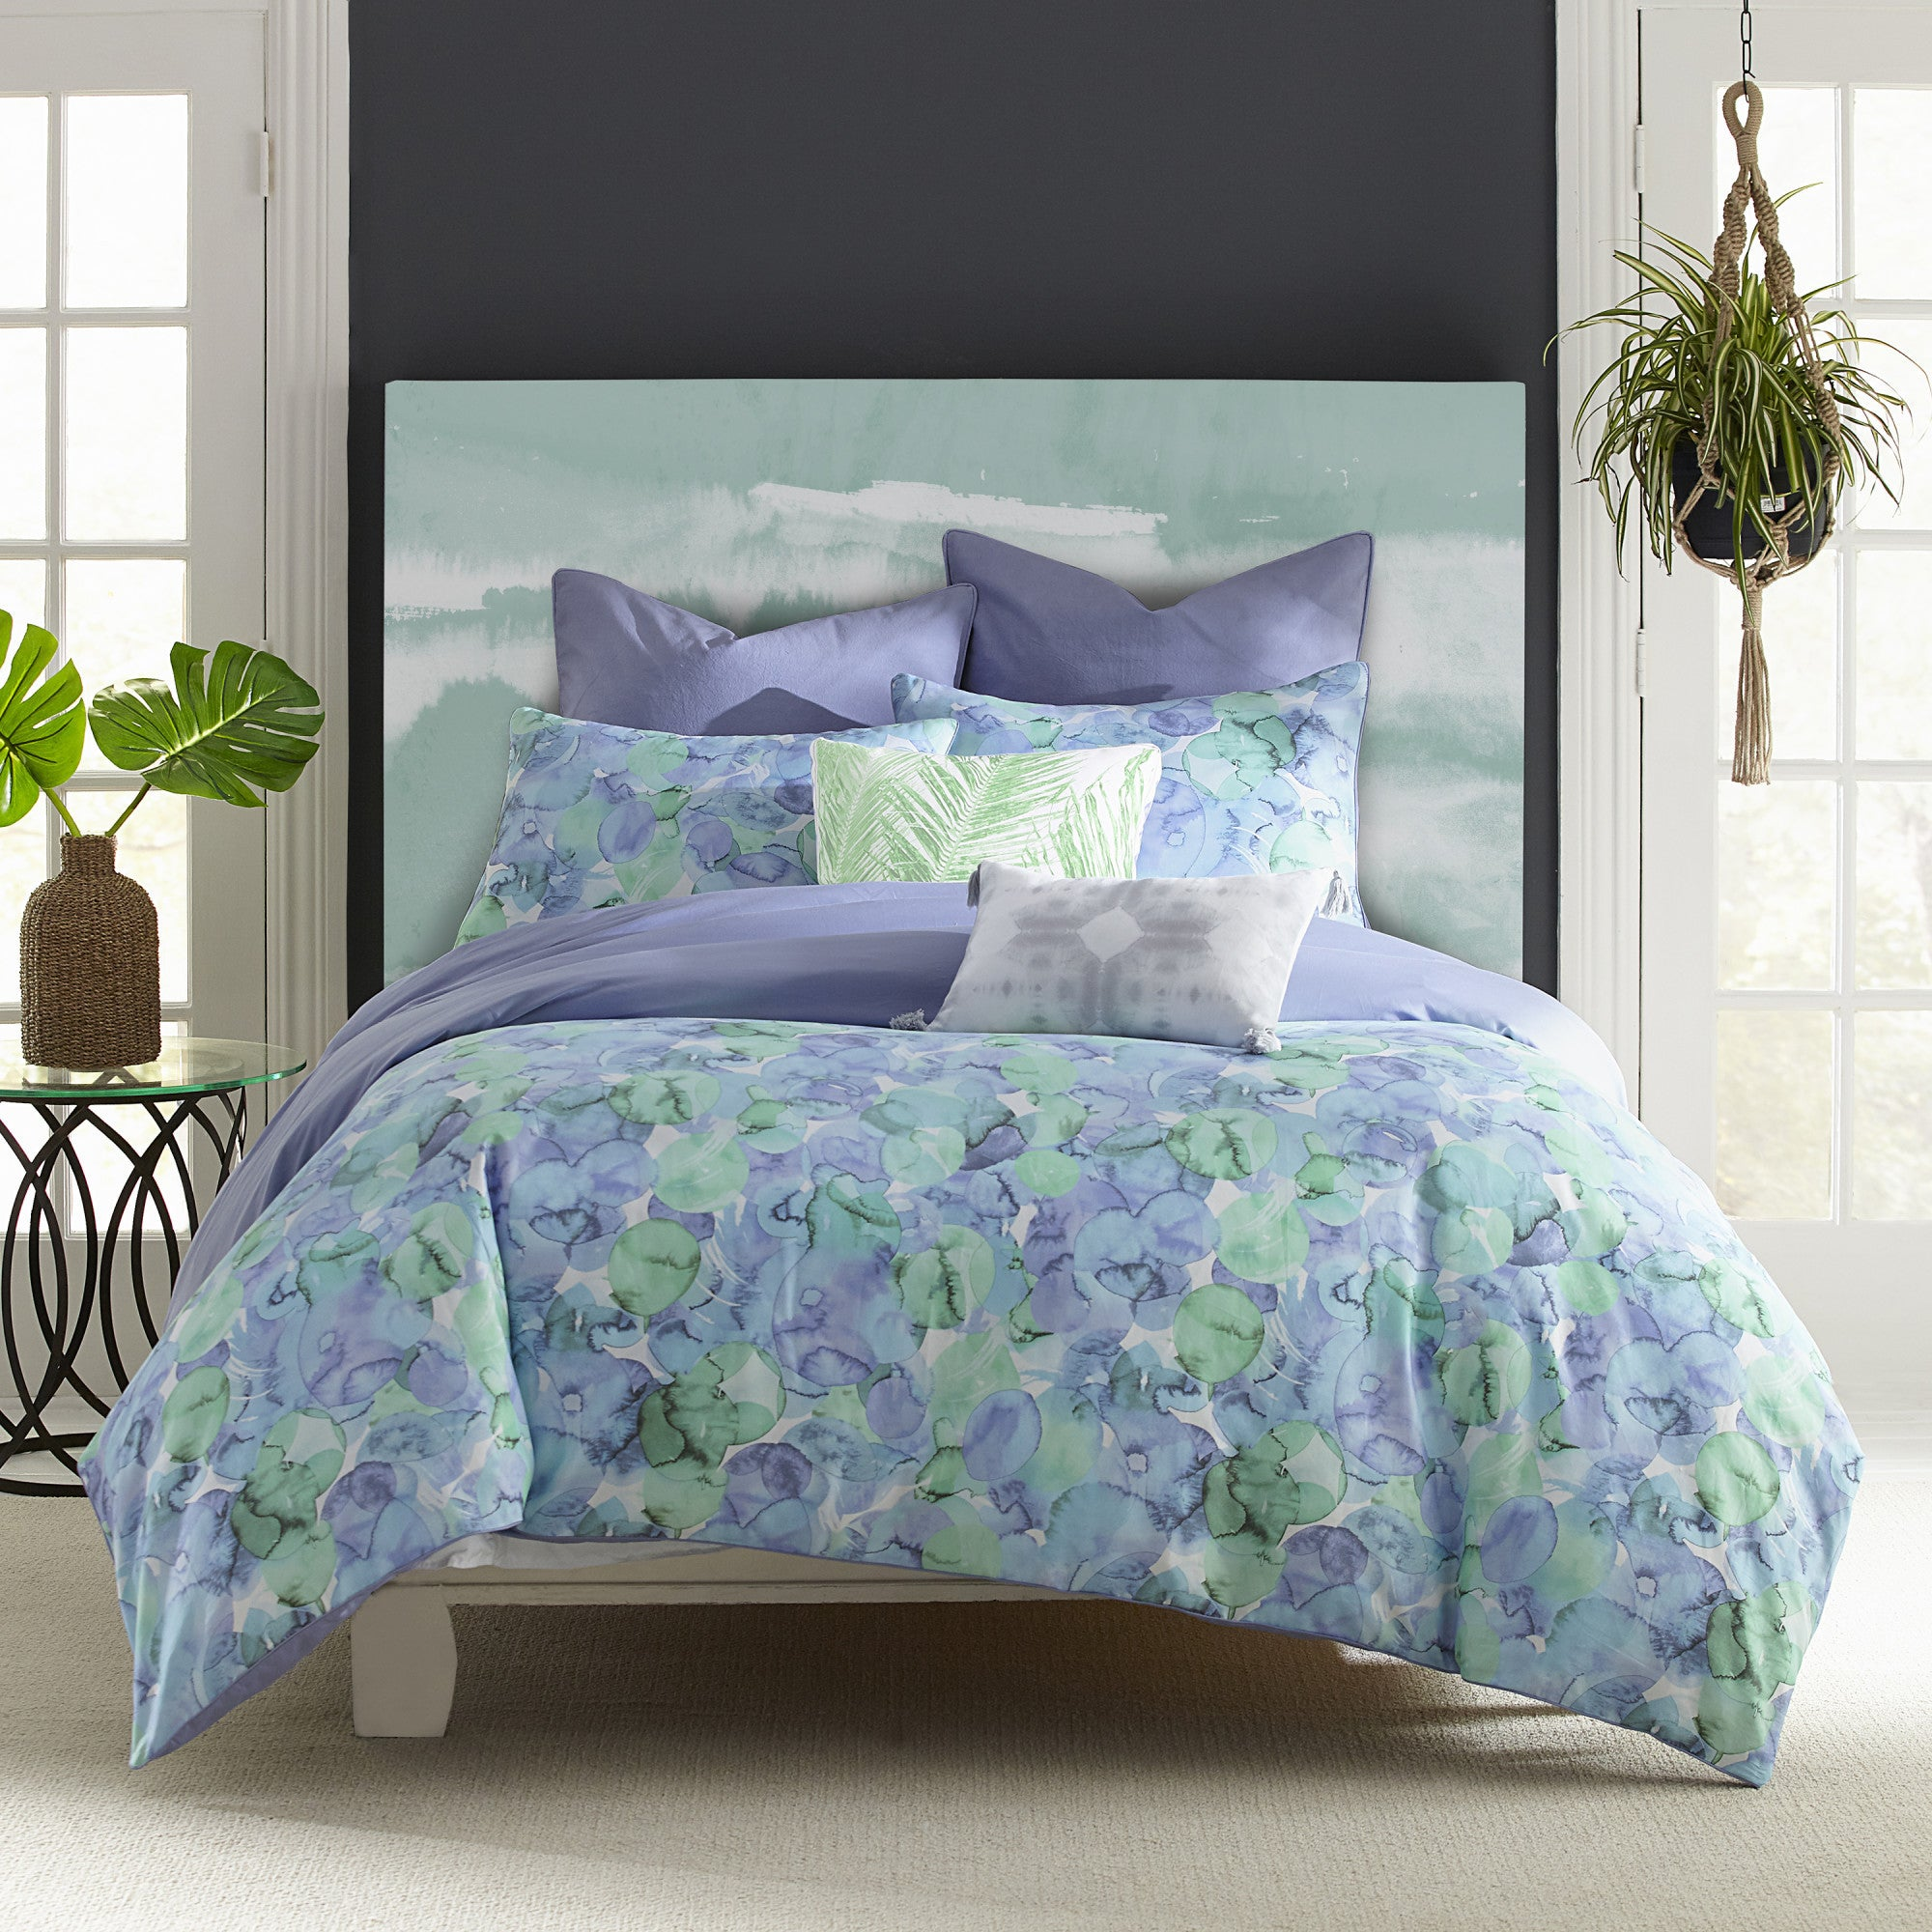 on product overstock chic shipping piece com free filomena bedding home set bed black bath comforter